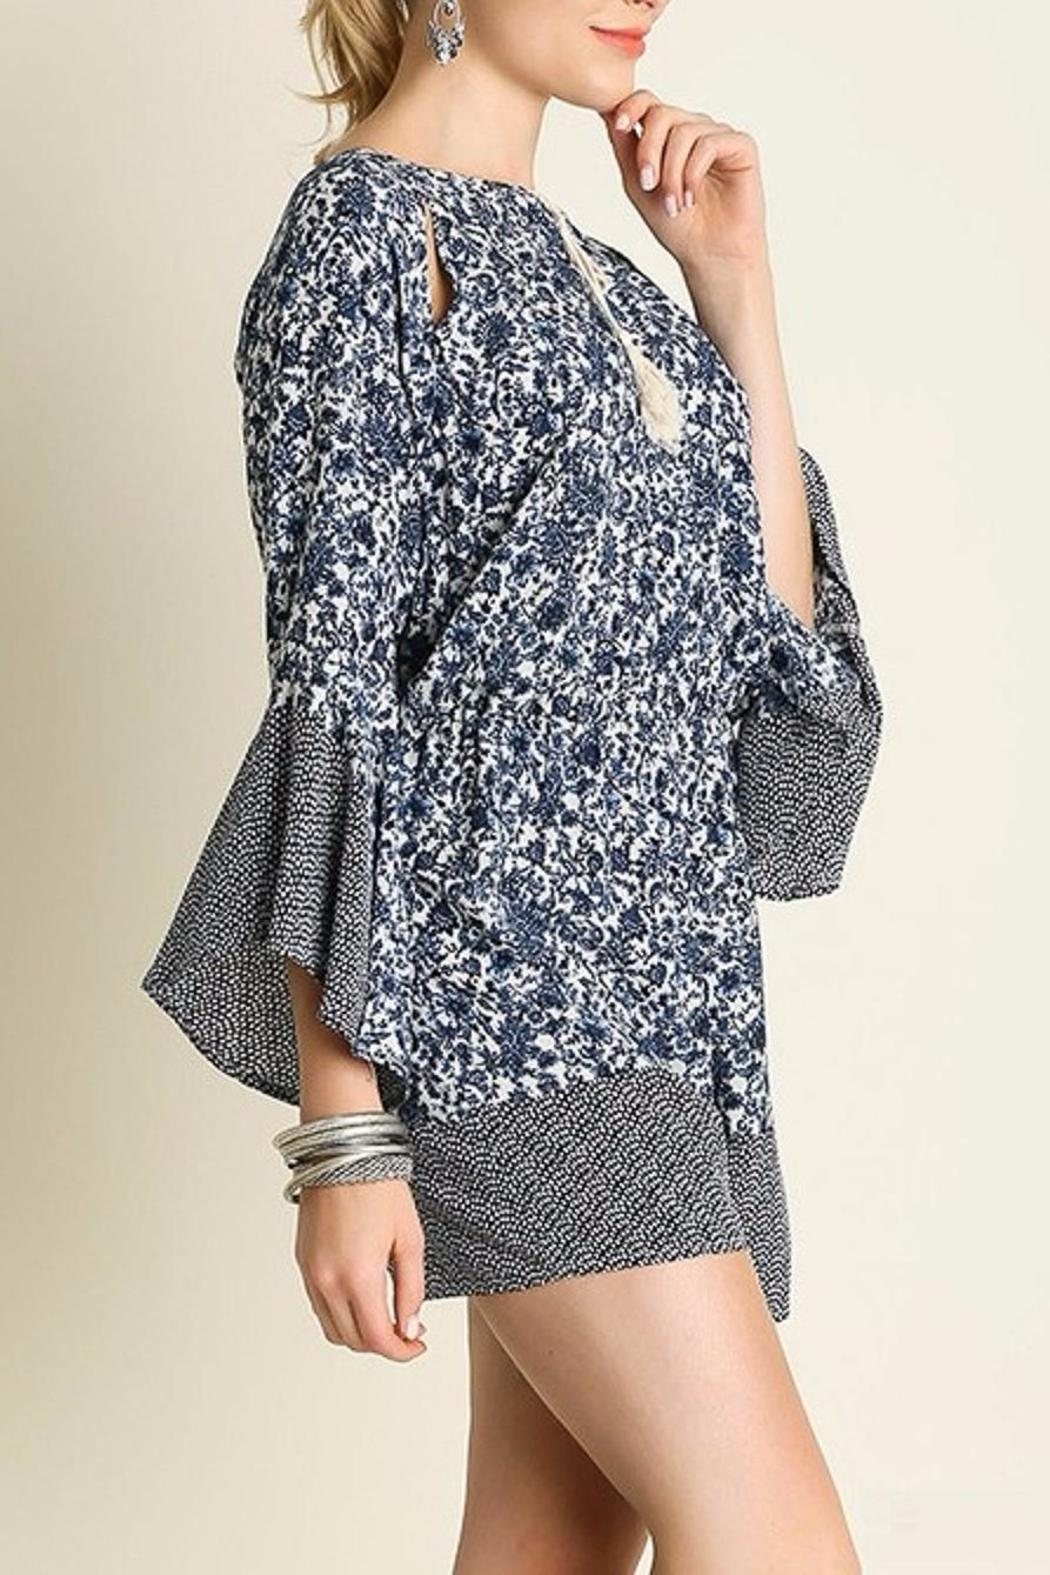 People Outfitter Adeline Romper - Front Full Image